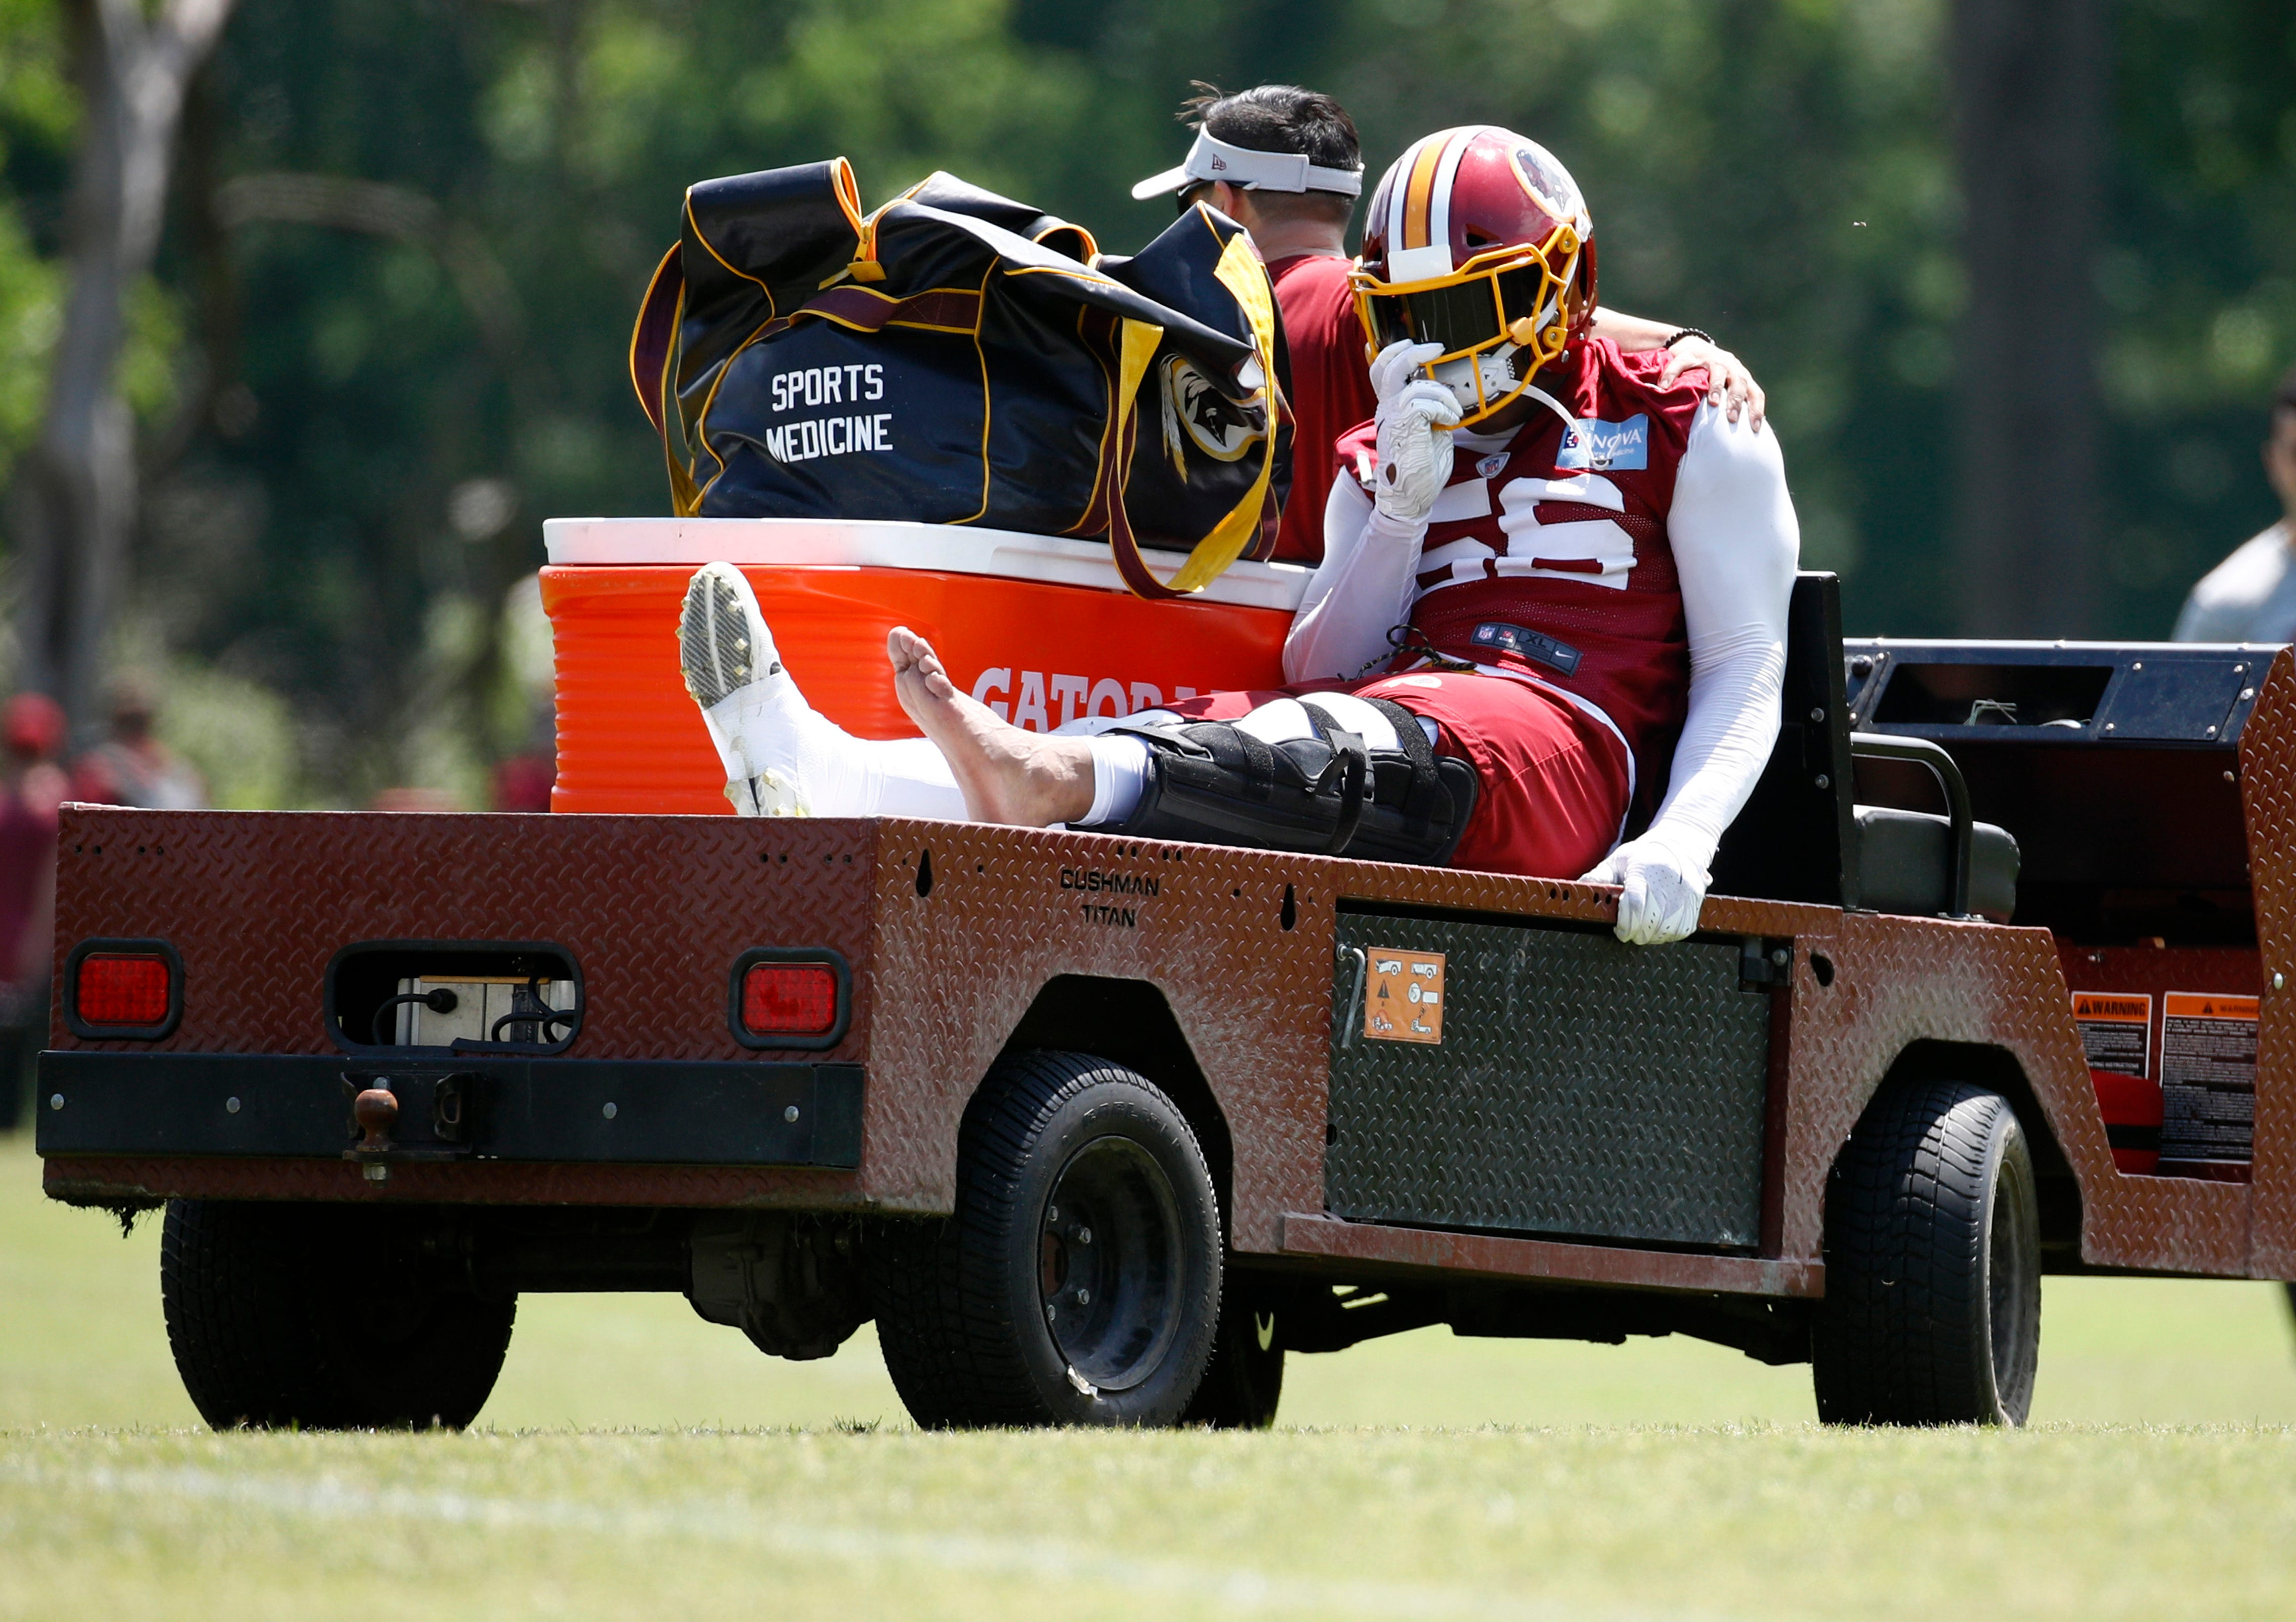 Washington Redskins LB Reuben Foster tears ACL in first OTA practice, per report